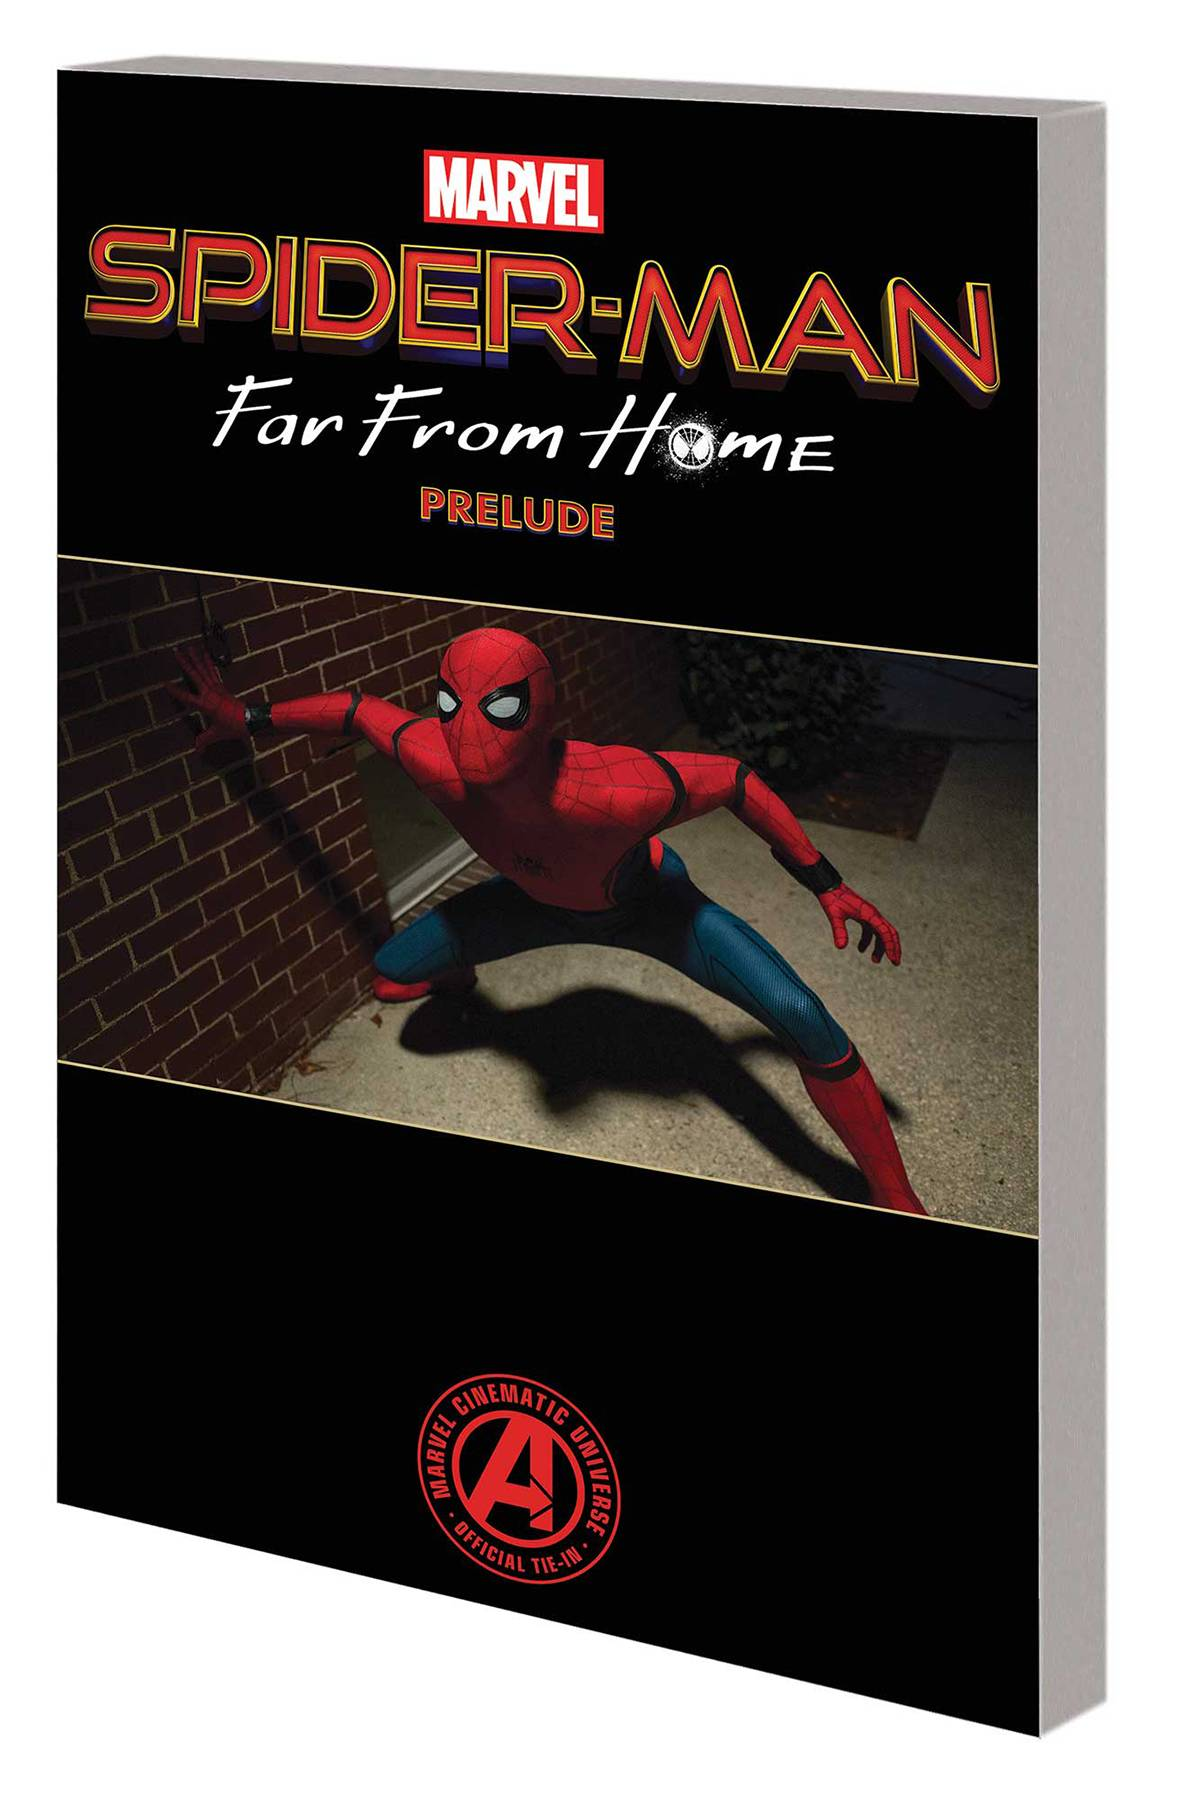 SPIDER-MAN FAR FROM HOME PRELUDE TP.jpg